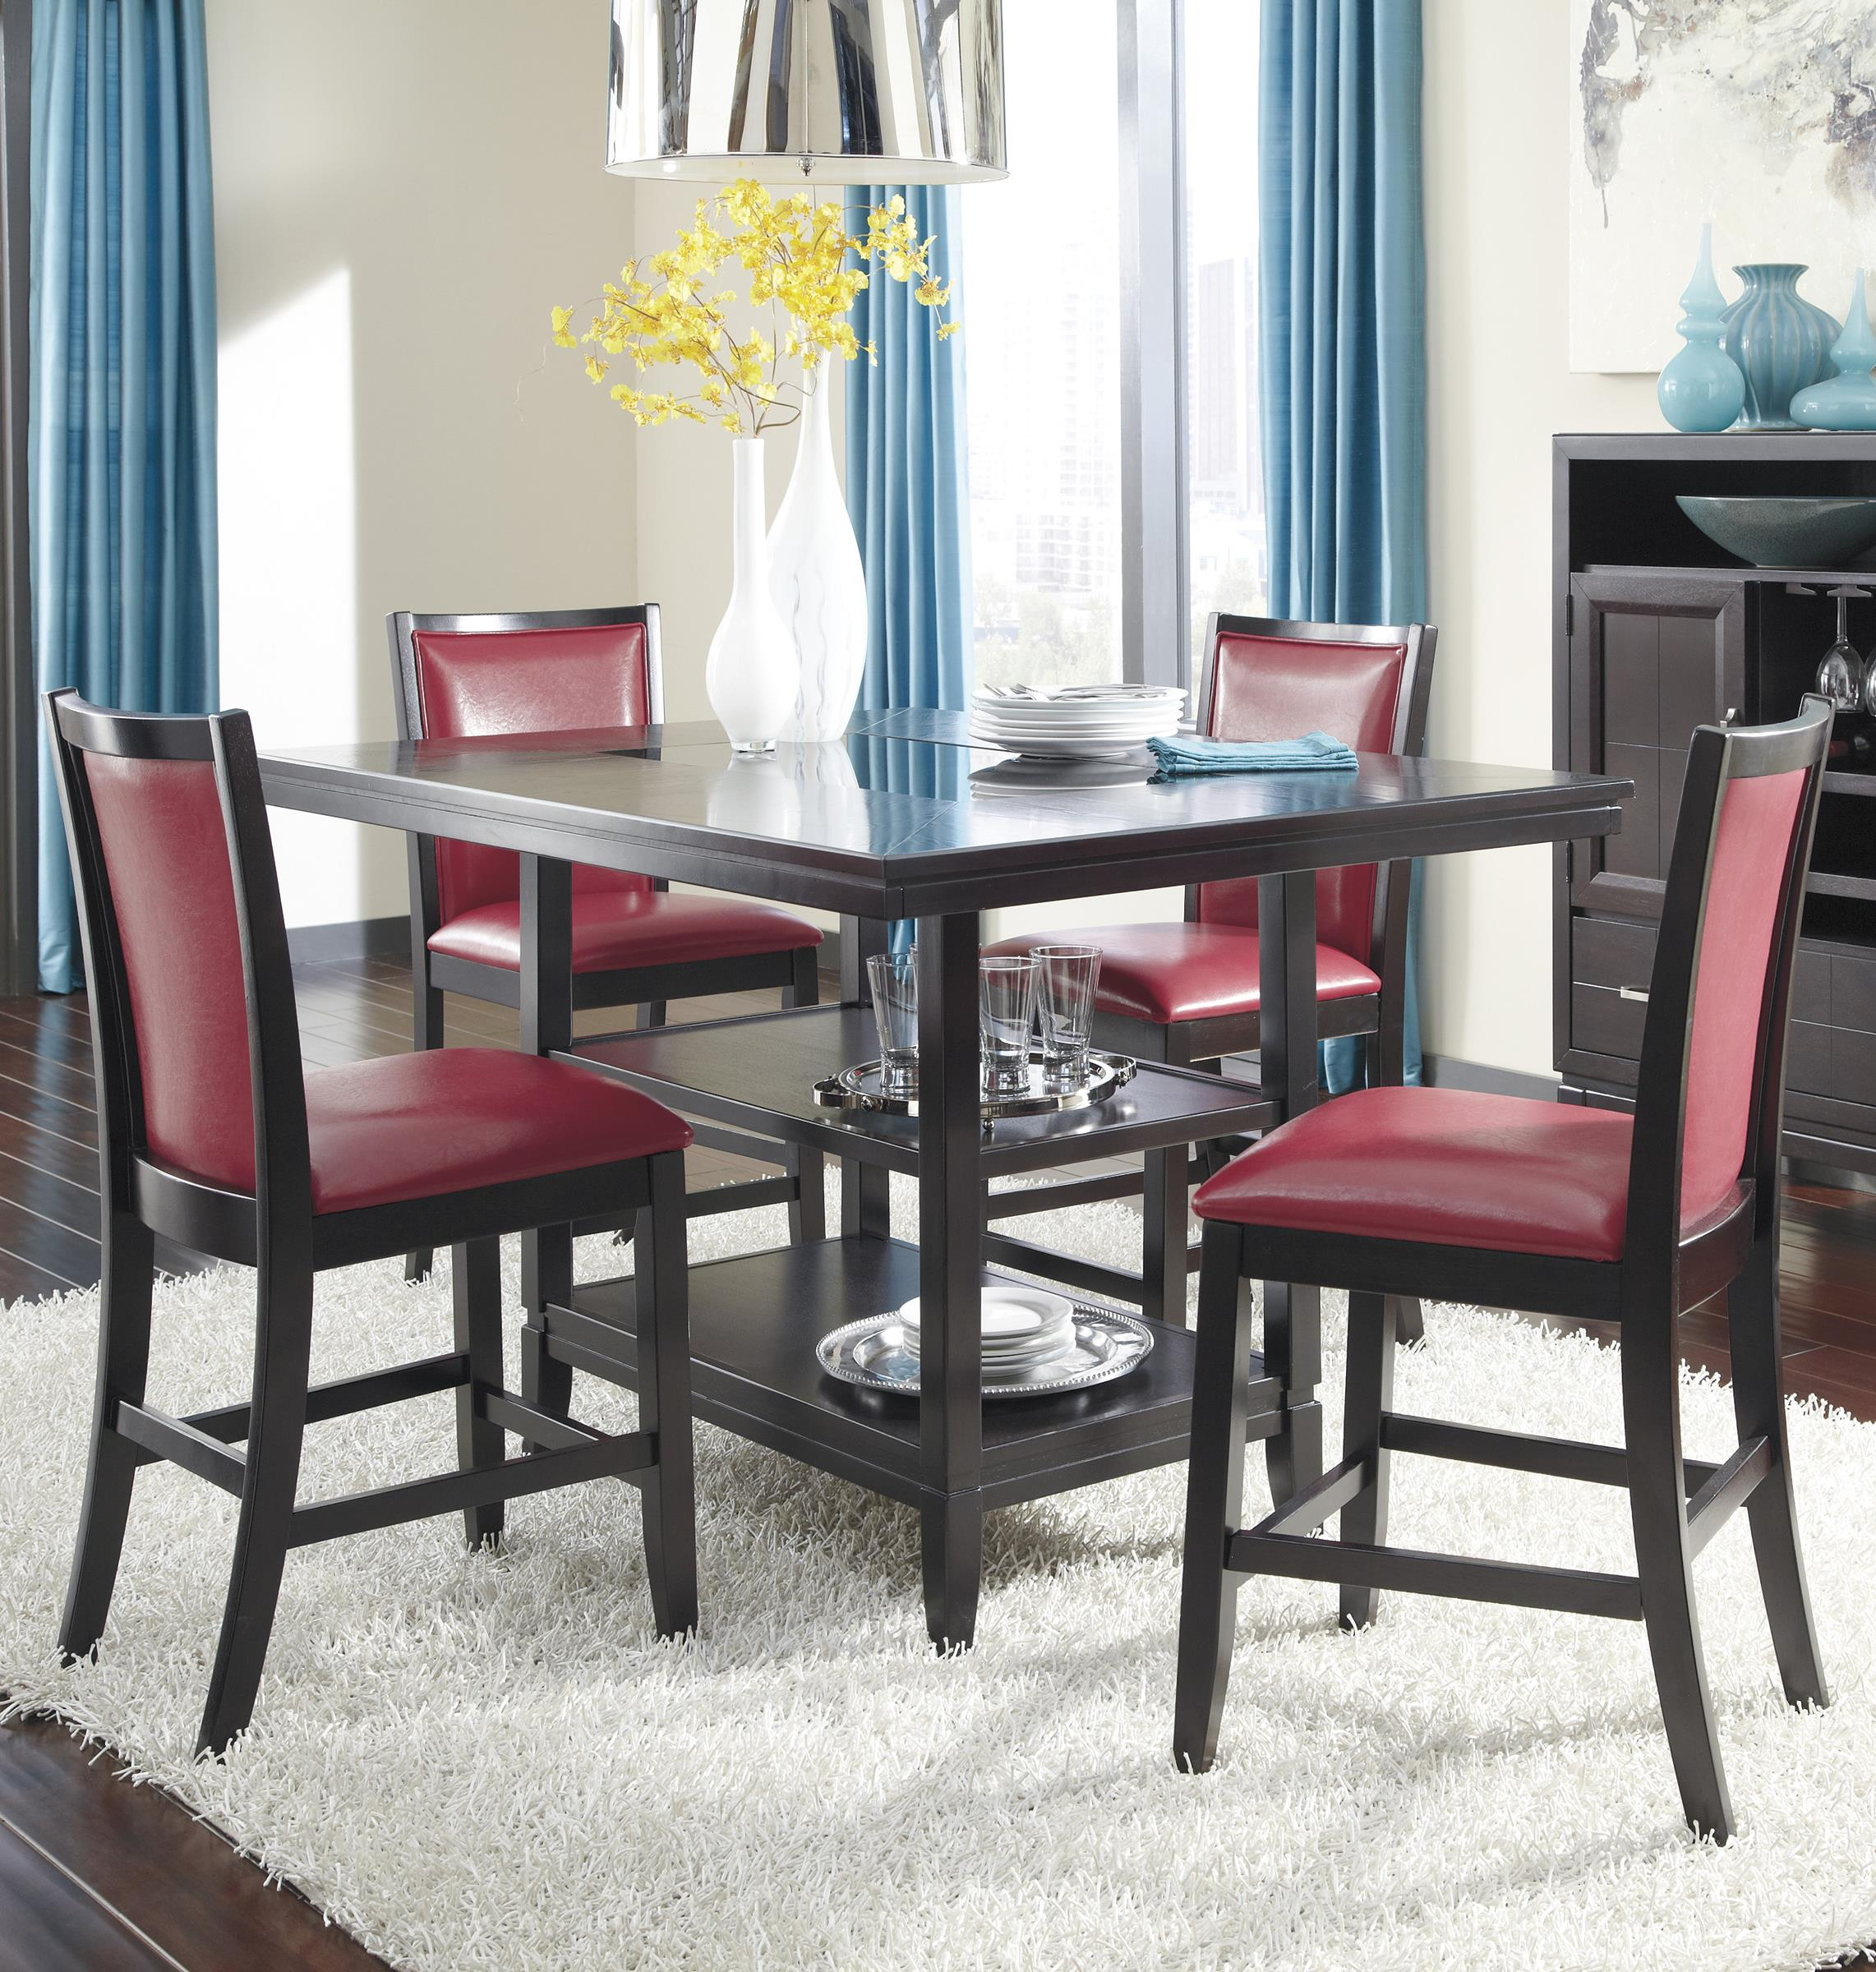 Ashley Furniture Trishelle 5-Piece Counter Table Set - Item Number: D550-32+4x424